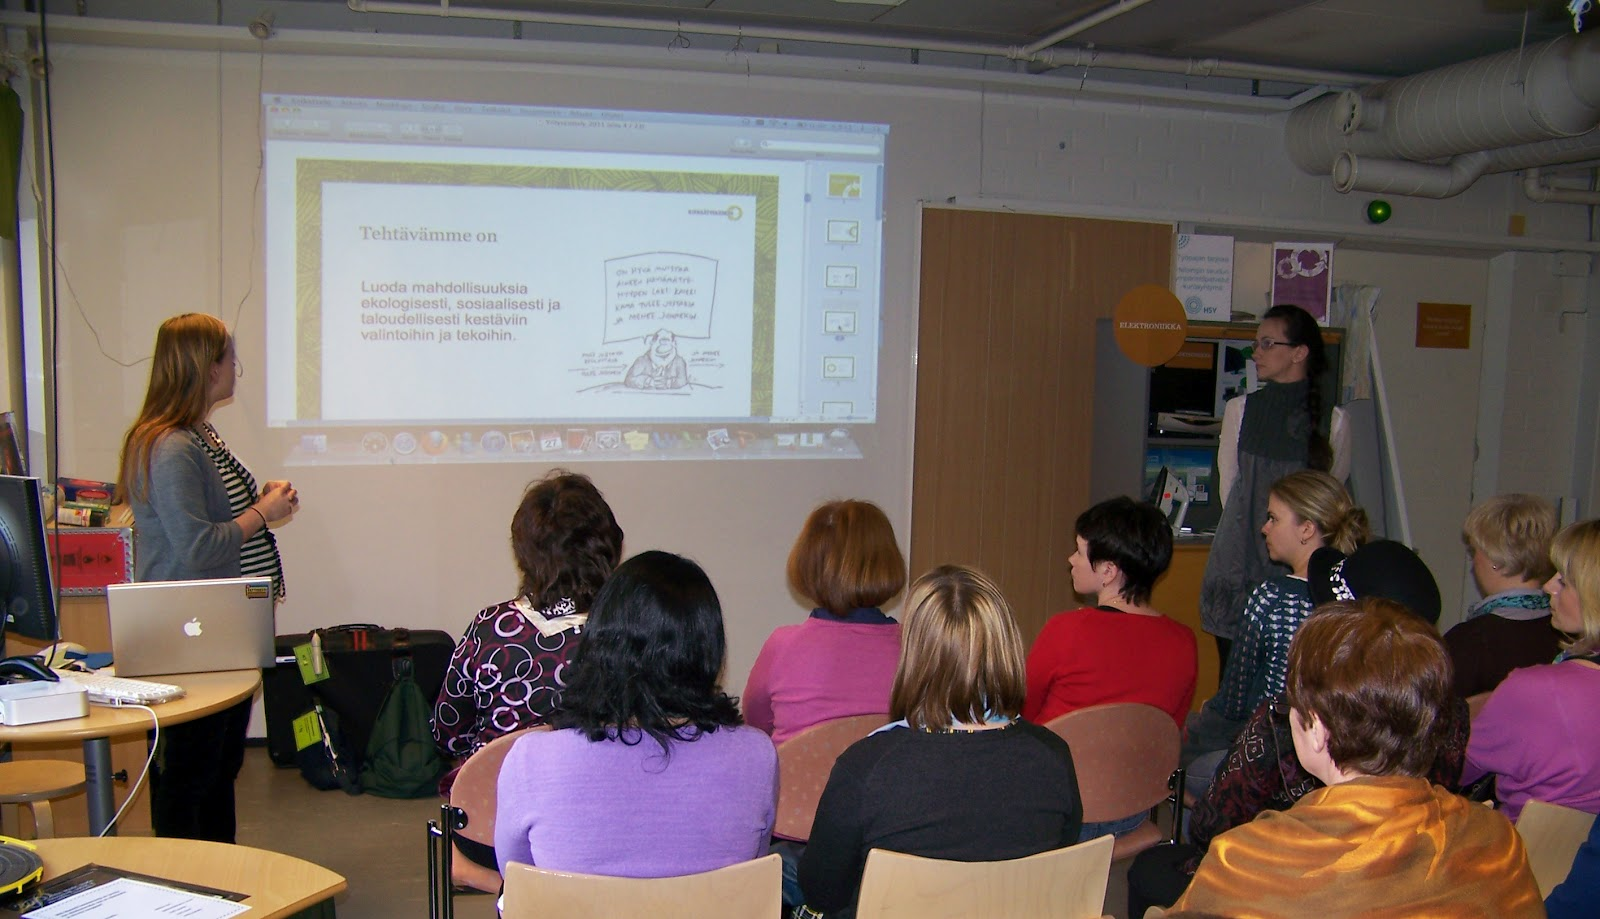 environmental education and play in swedish Perceptions of the concept of sustainable development among russian and swedish students examensarbete på lärarprogrammet environmental education, education for sustainable development, russia, sweden can play an important role in the process of reorganizing the society and.